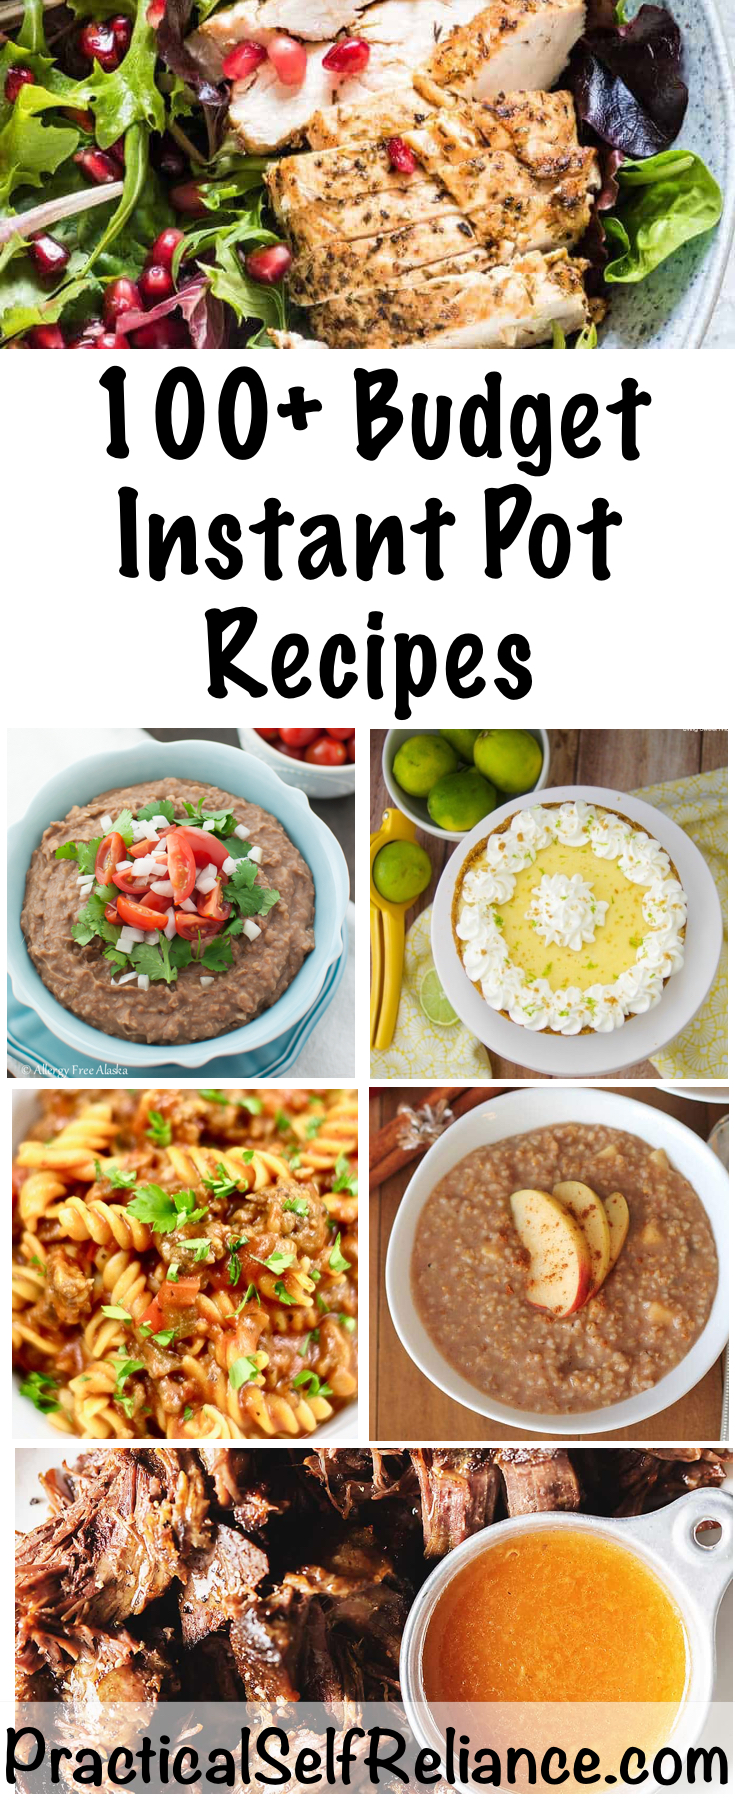 100+ Budget Instant Pot Recipes ~ Breakfast, Lunch & Dinner ~ Vegan, Keto, Paleo and More